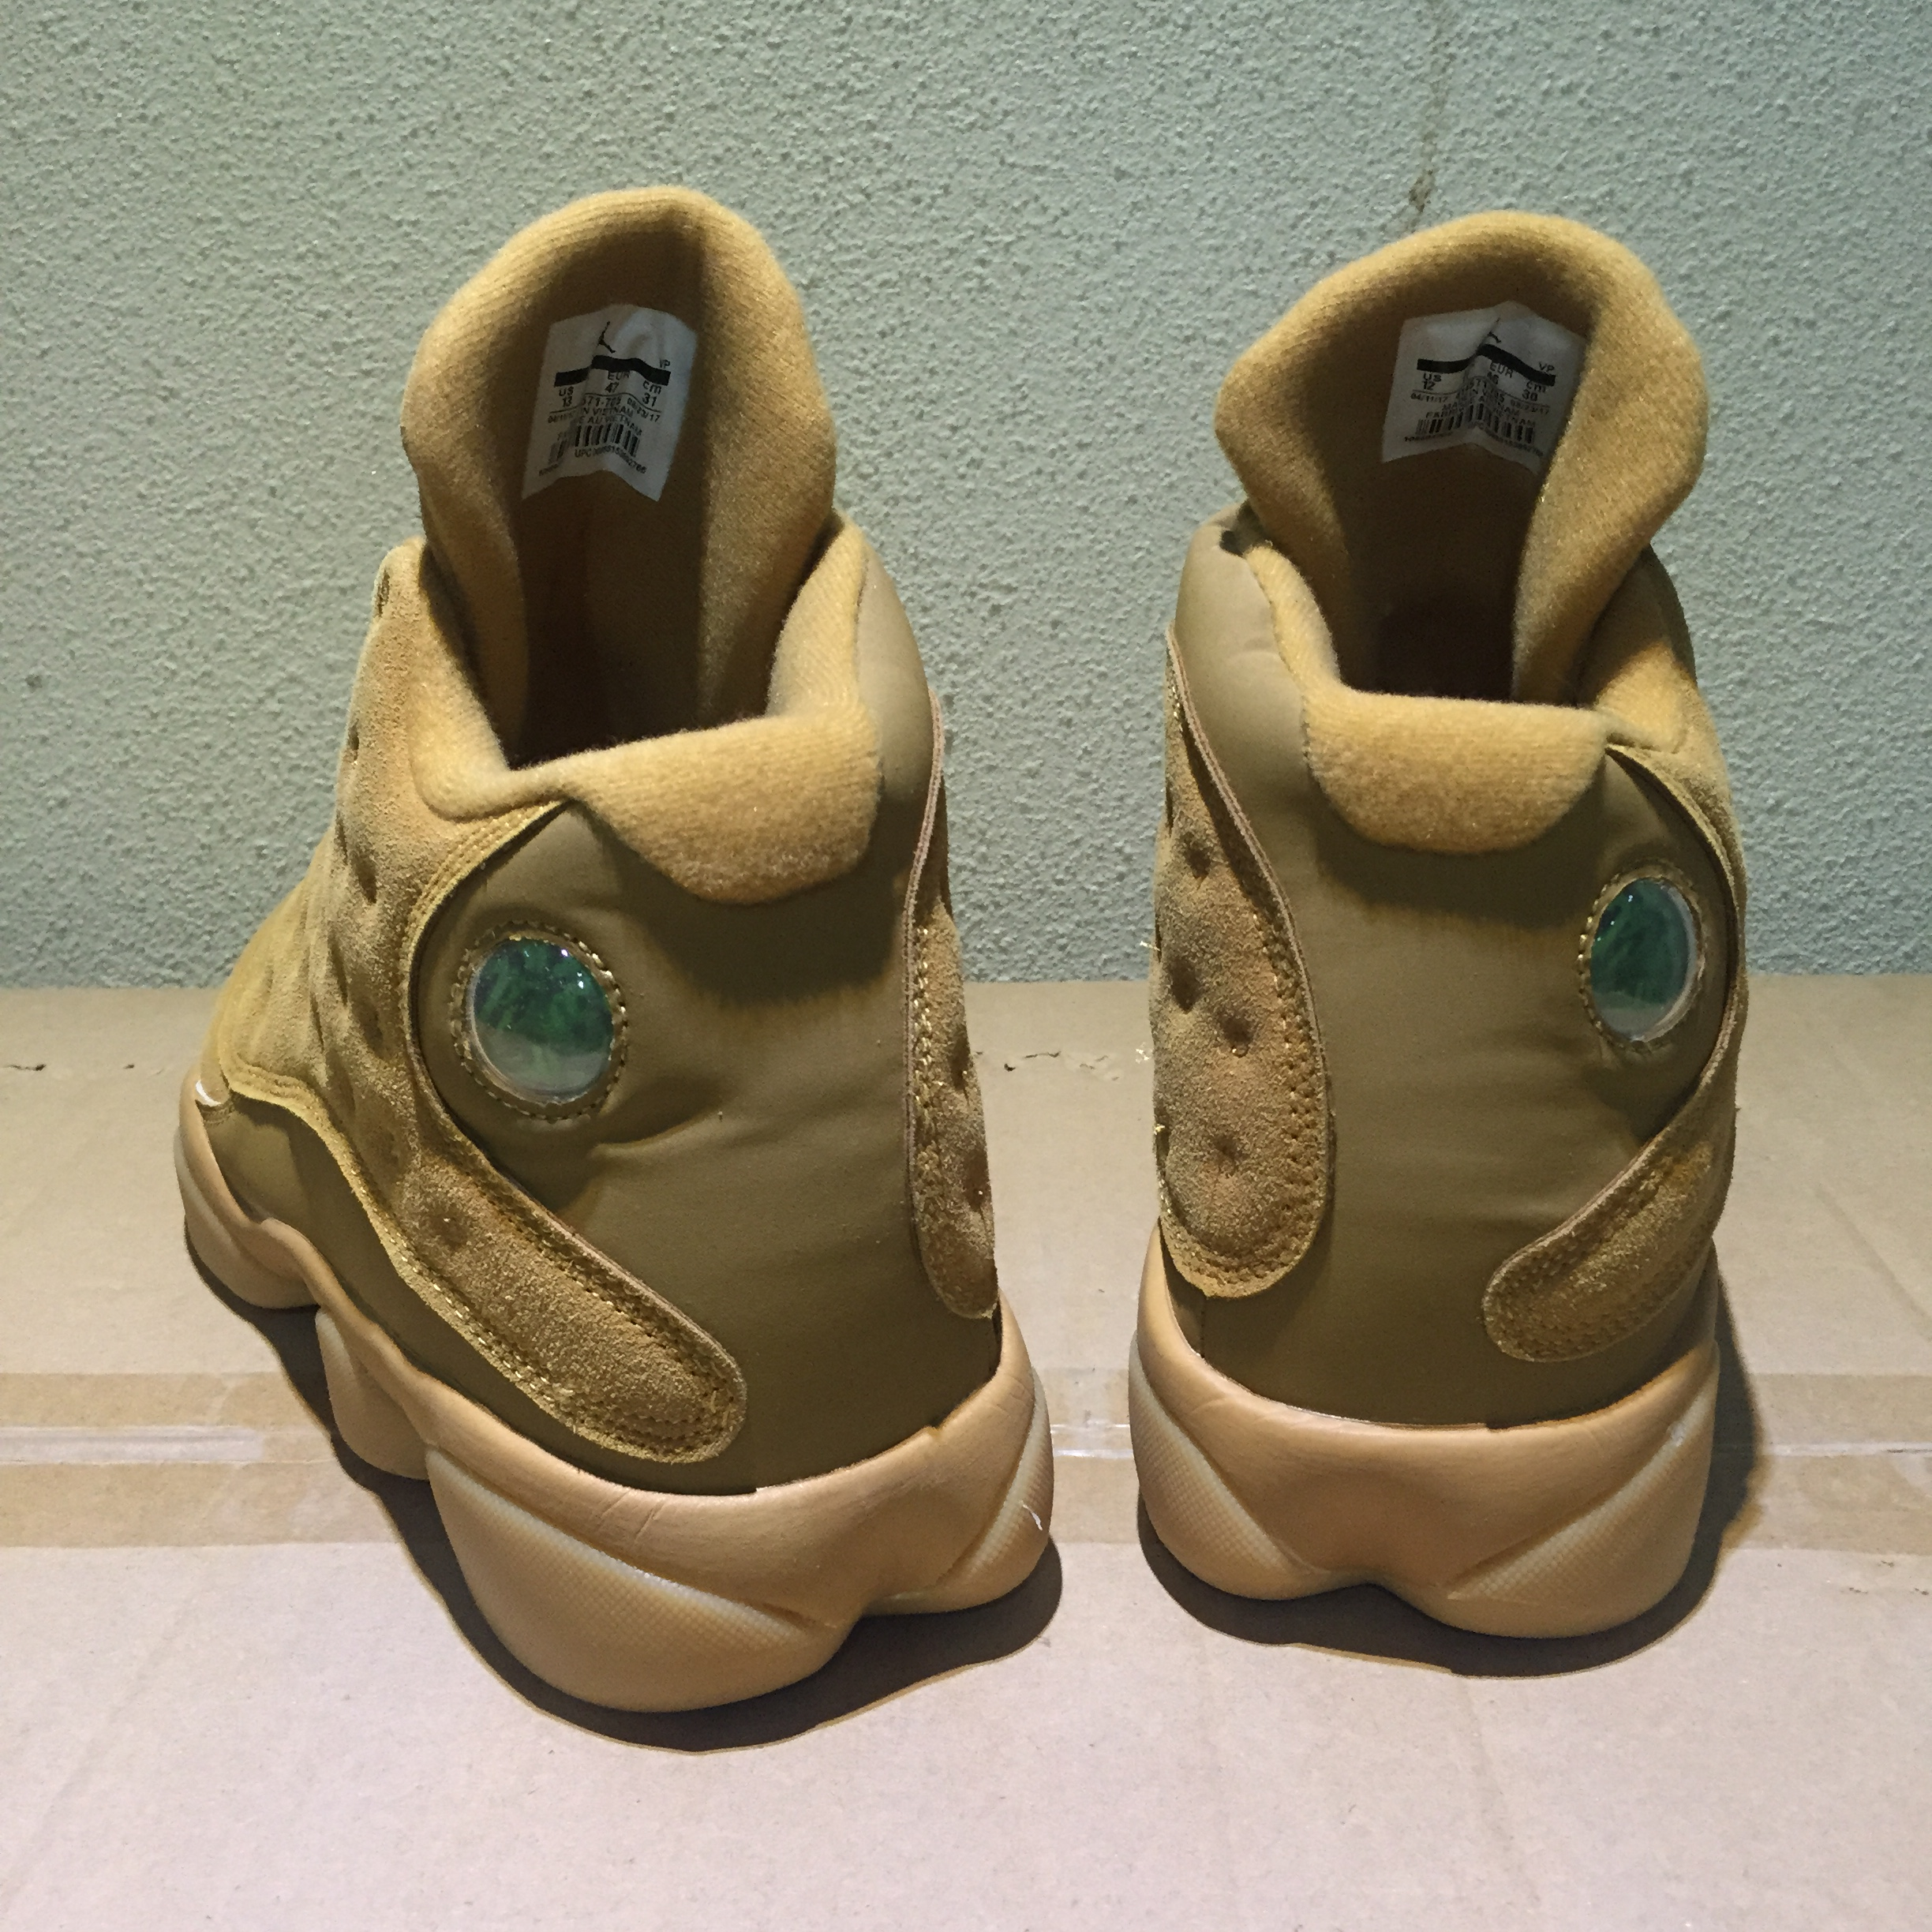 New Air Jordan 13 Retro Wheat Shoes